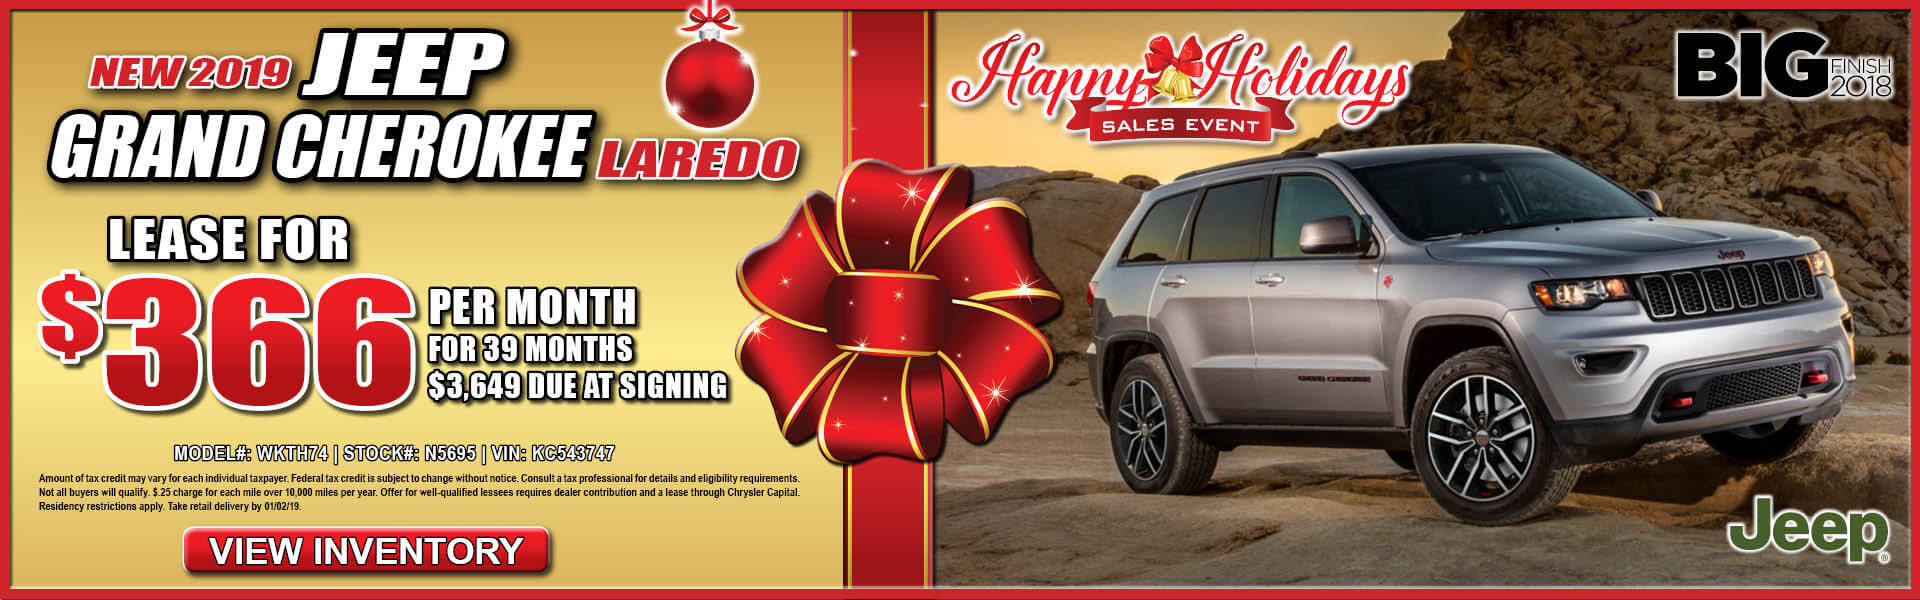 Jeep Grand Cherokee $366 Lease